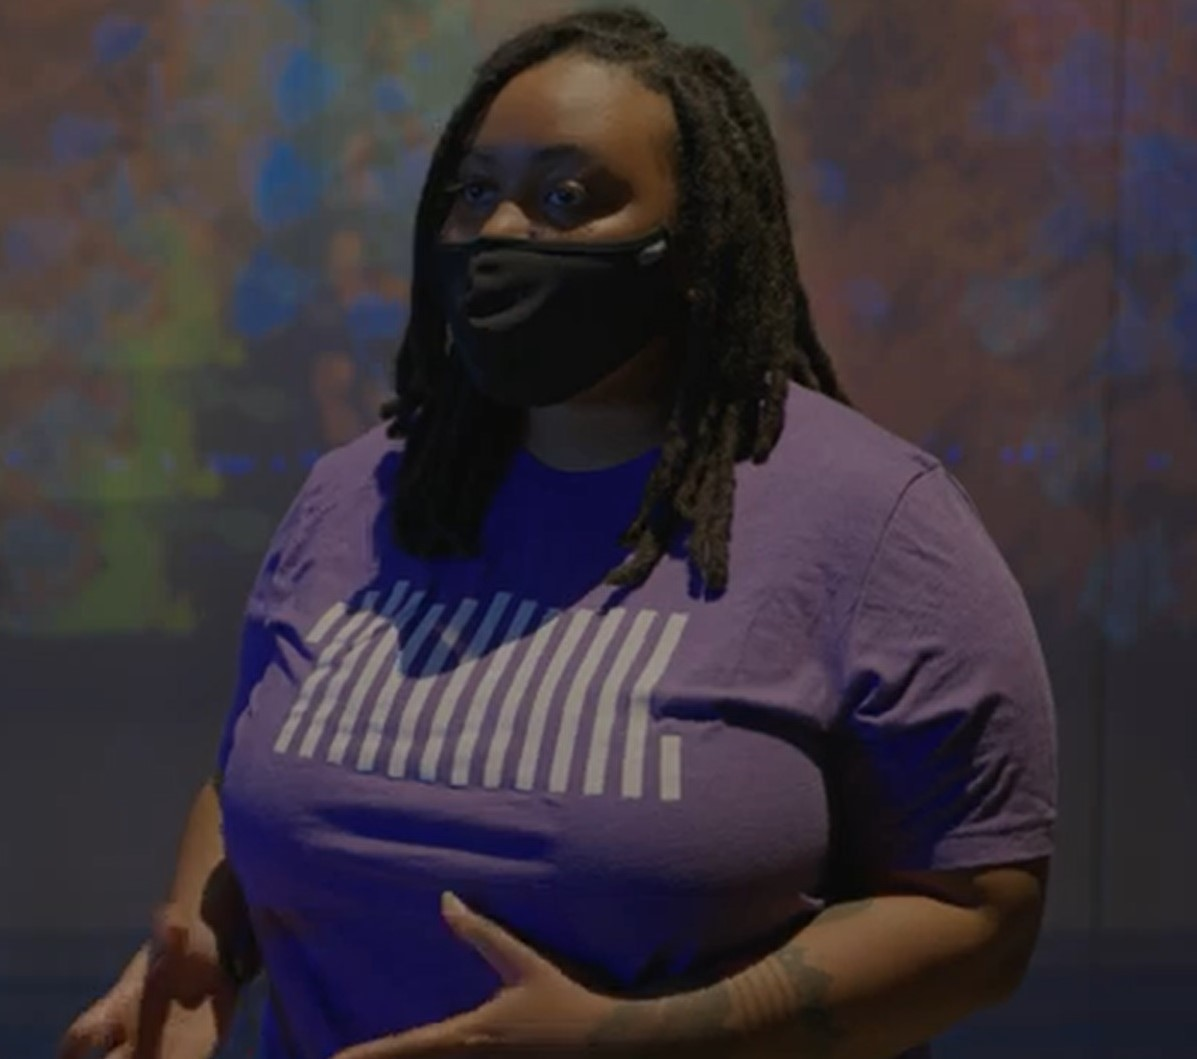 A person wearing a black mask and purple T-shirt speaks in front of an abstract art installation